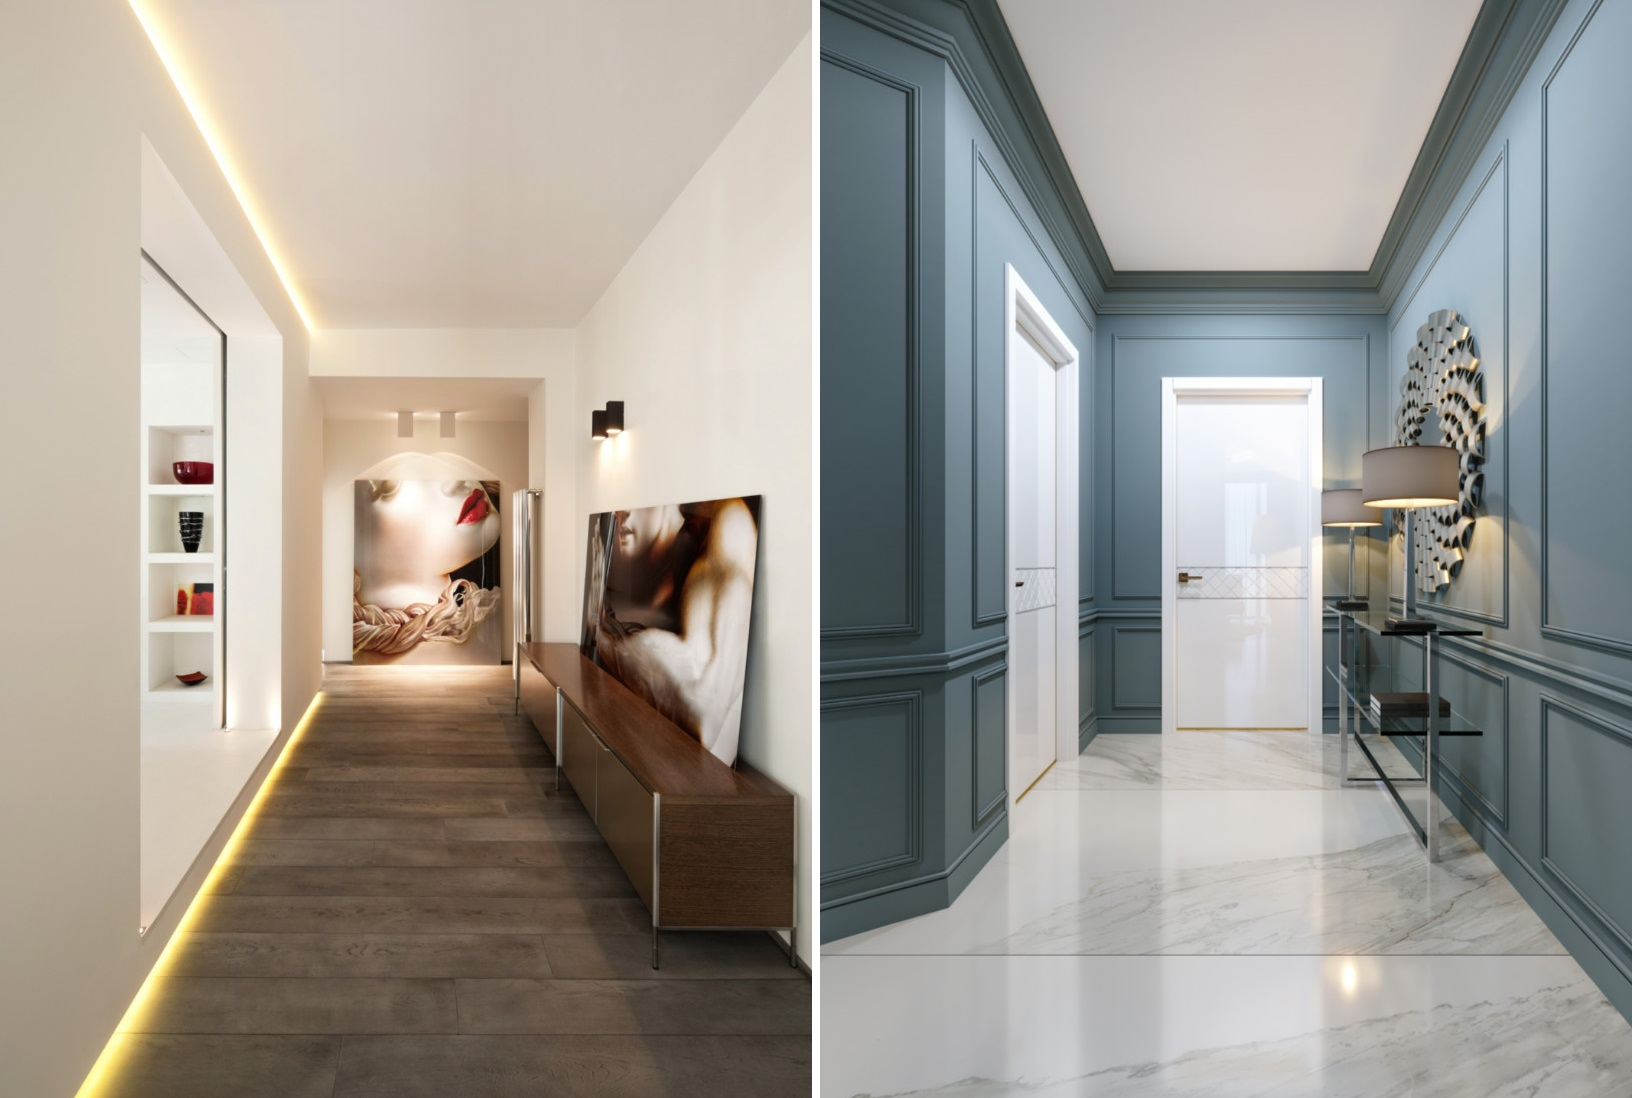 10 Hallway Lighting Ideas To Make Any Windowless Space Brighter